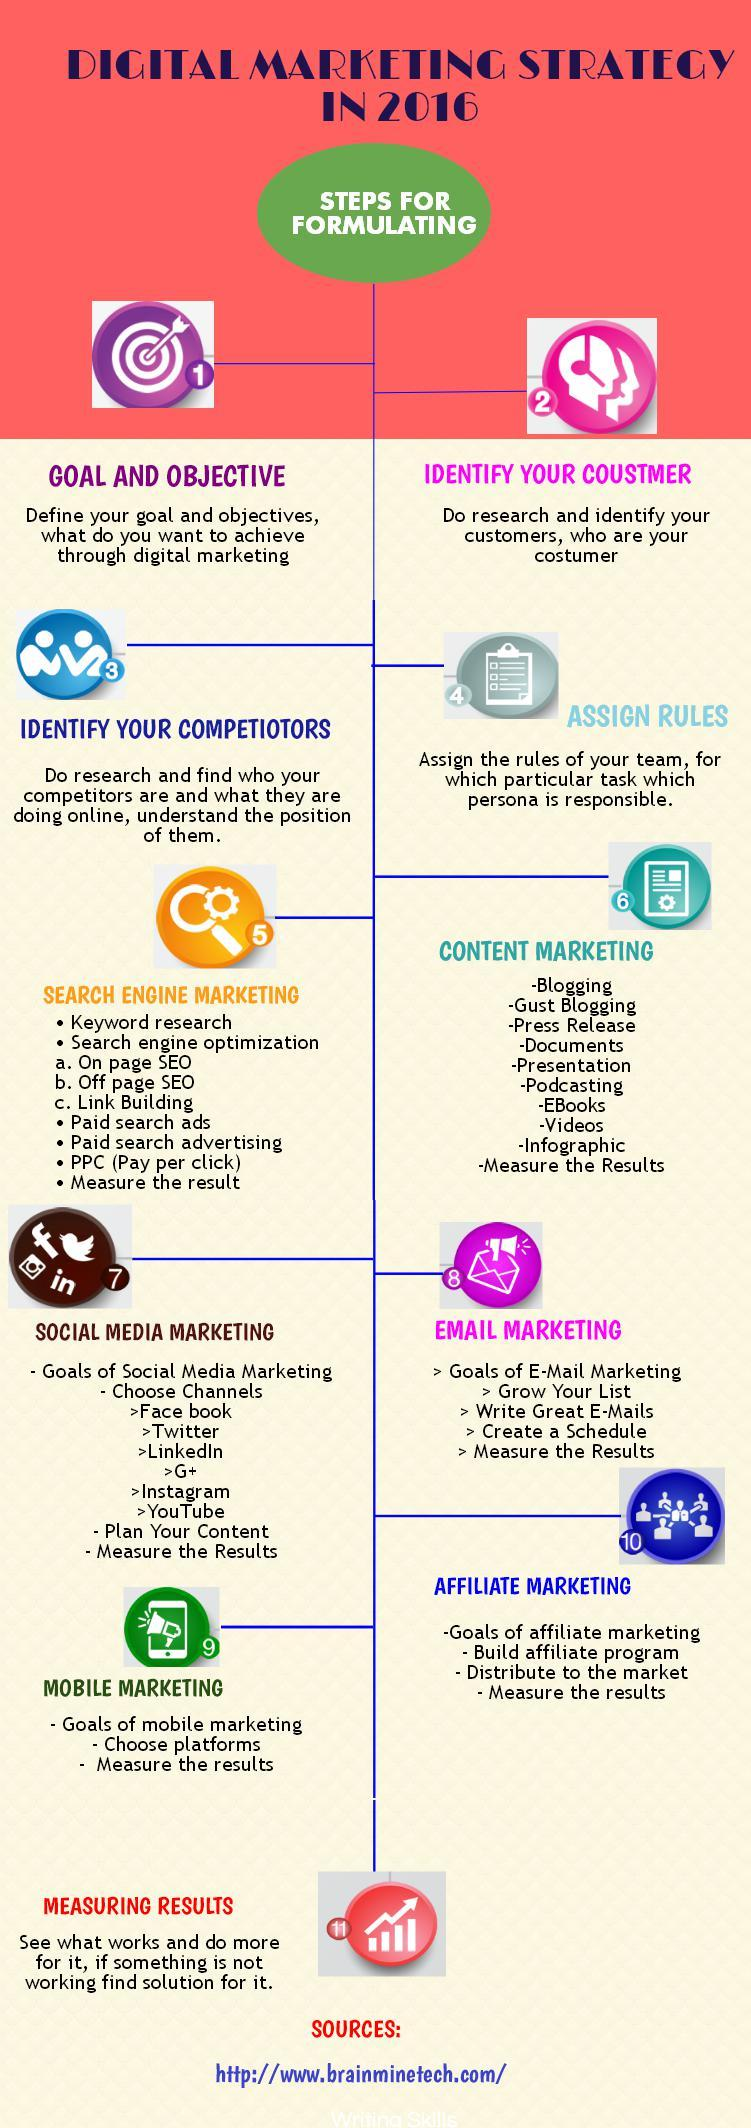 Digital Marketing Strategy in 2016